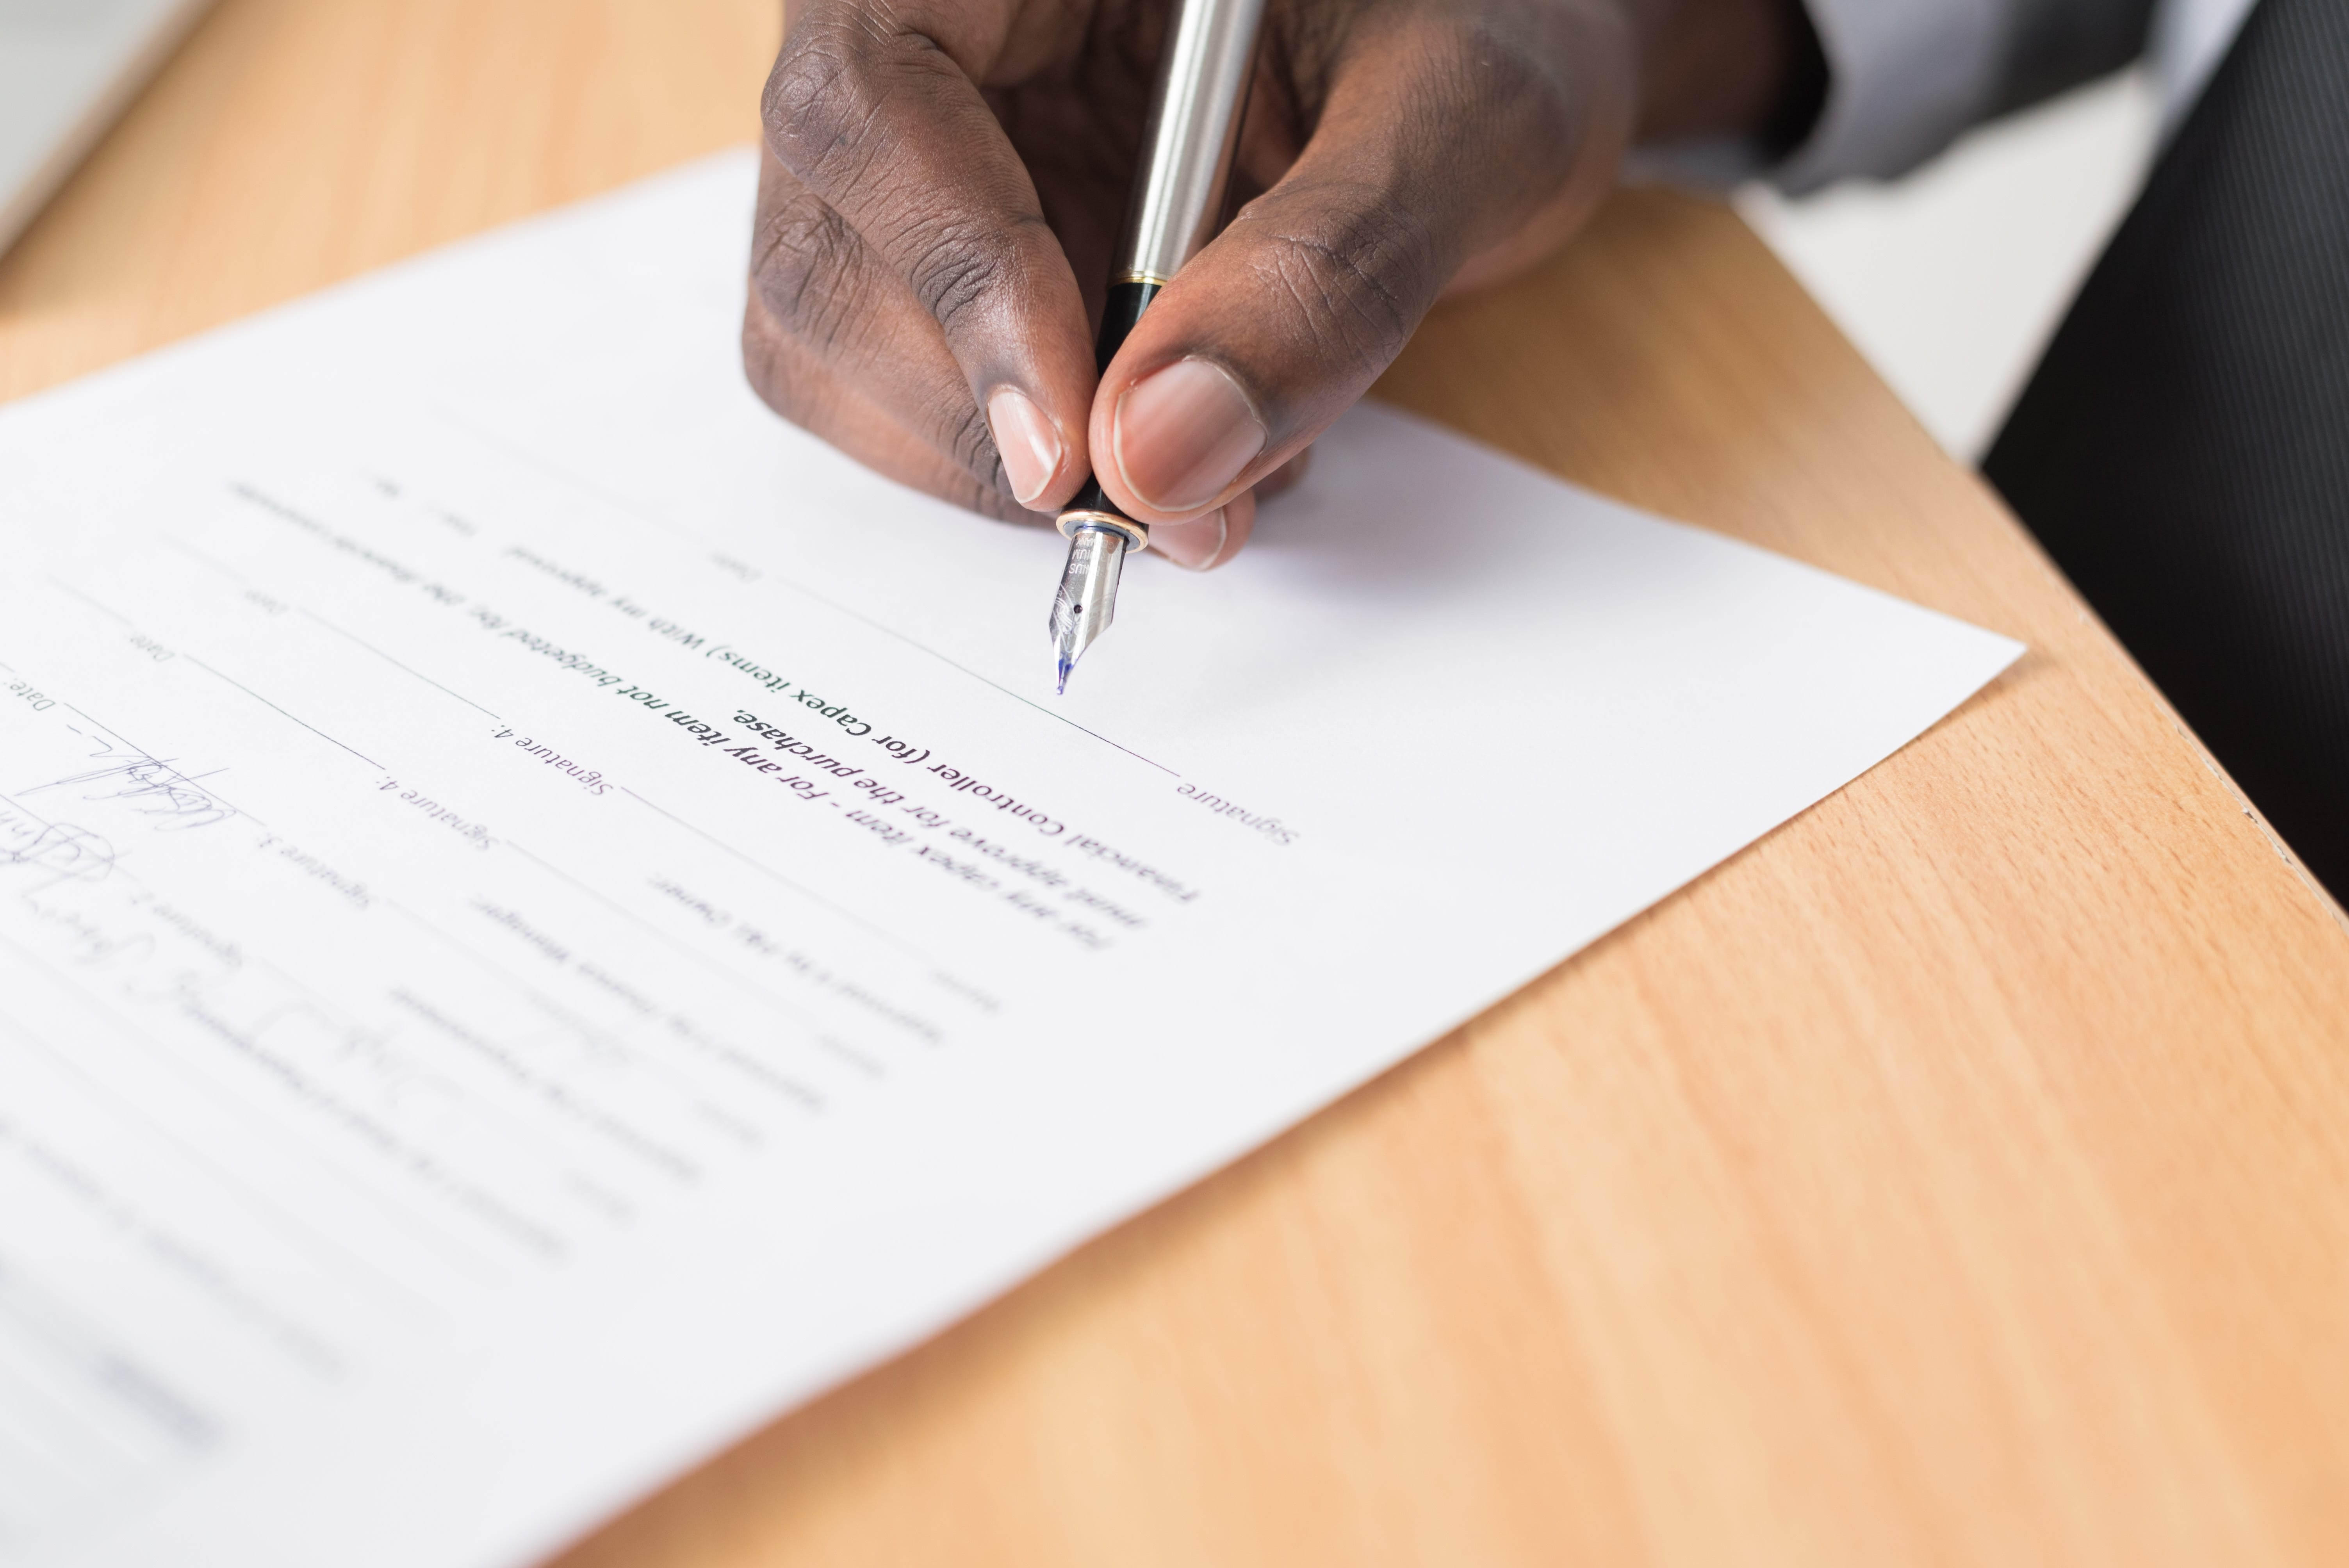 Man signing paperwork with a fountain pen; image by Cytonn Photography, via Unsplash.com.